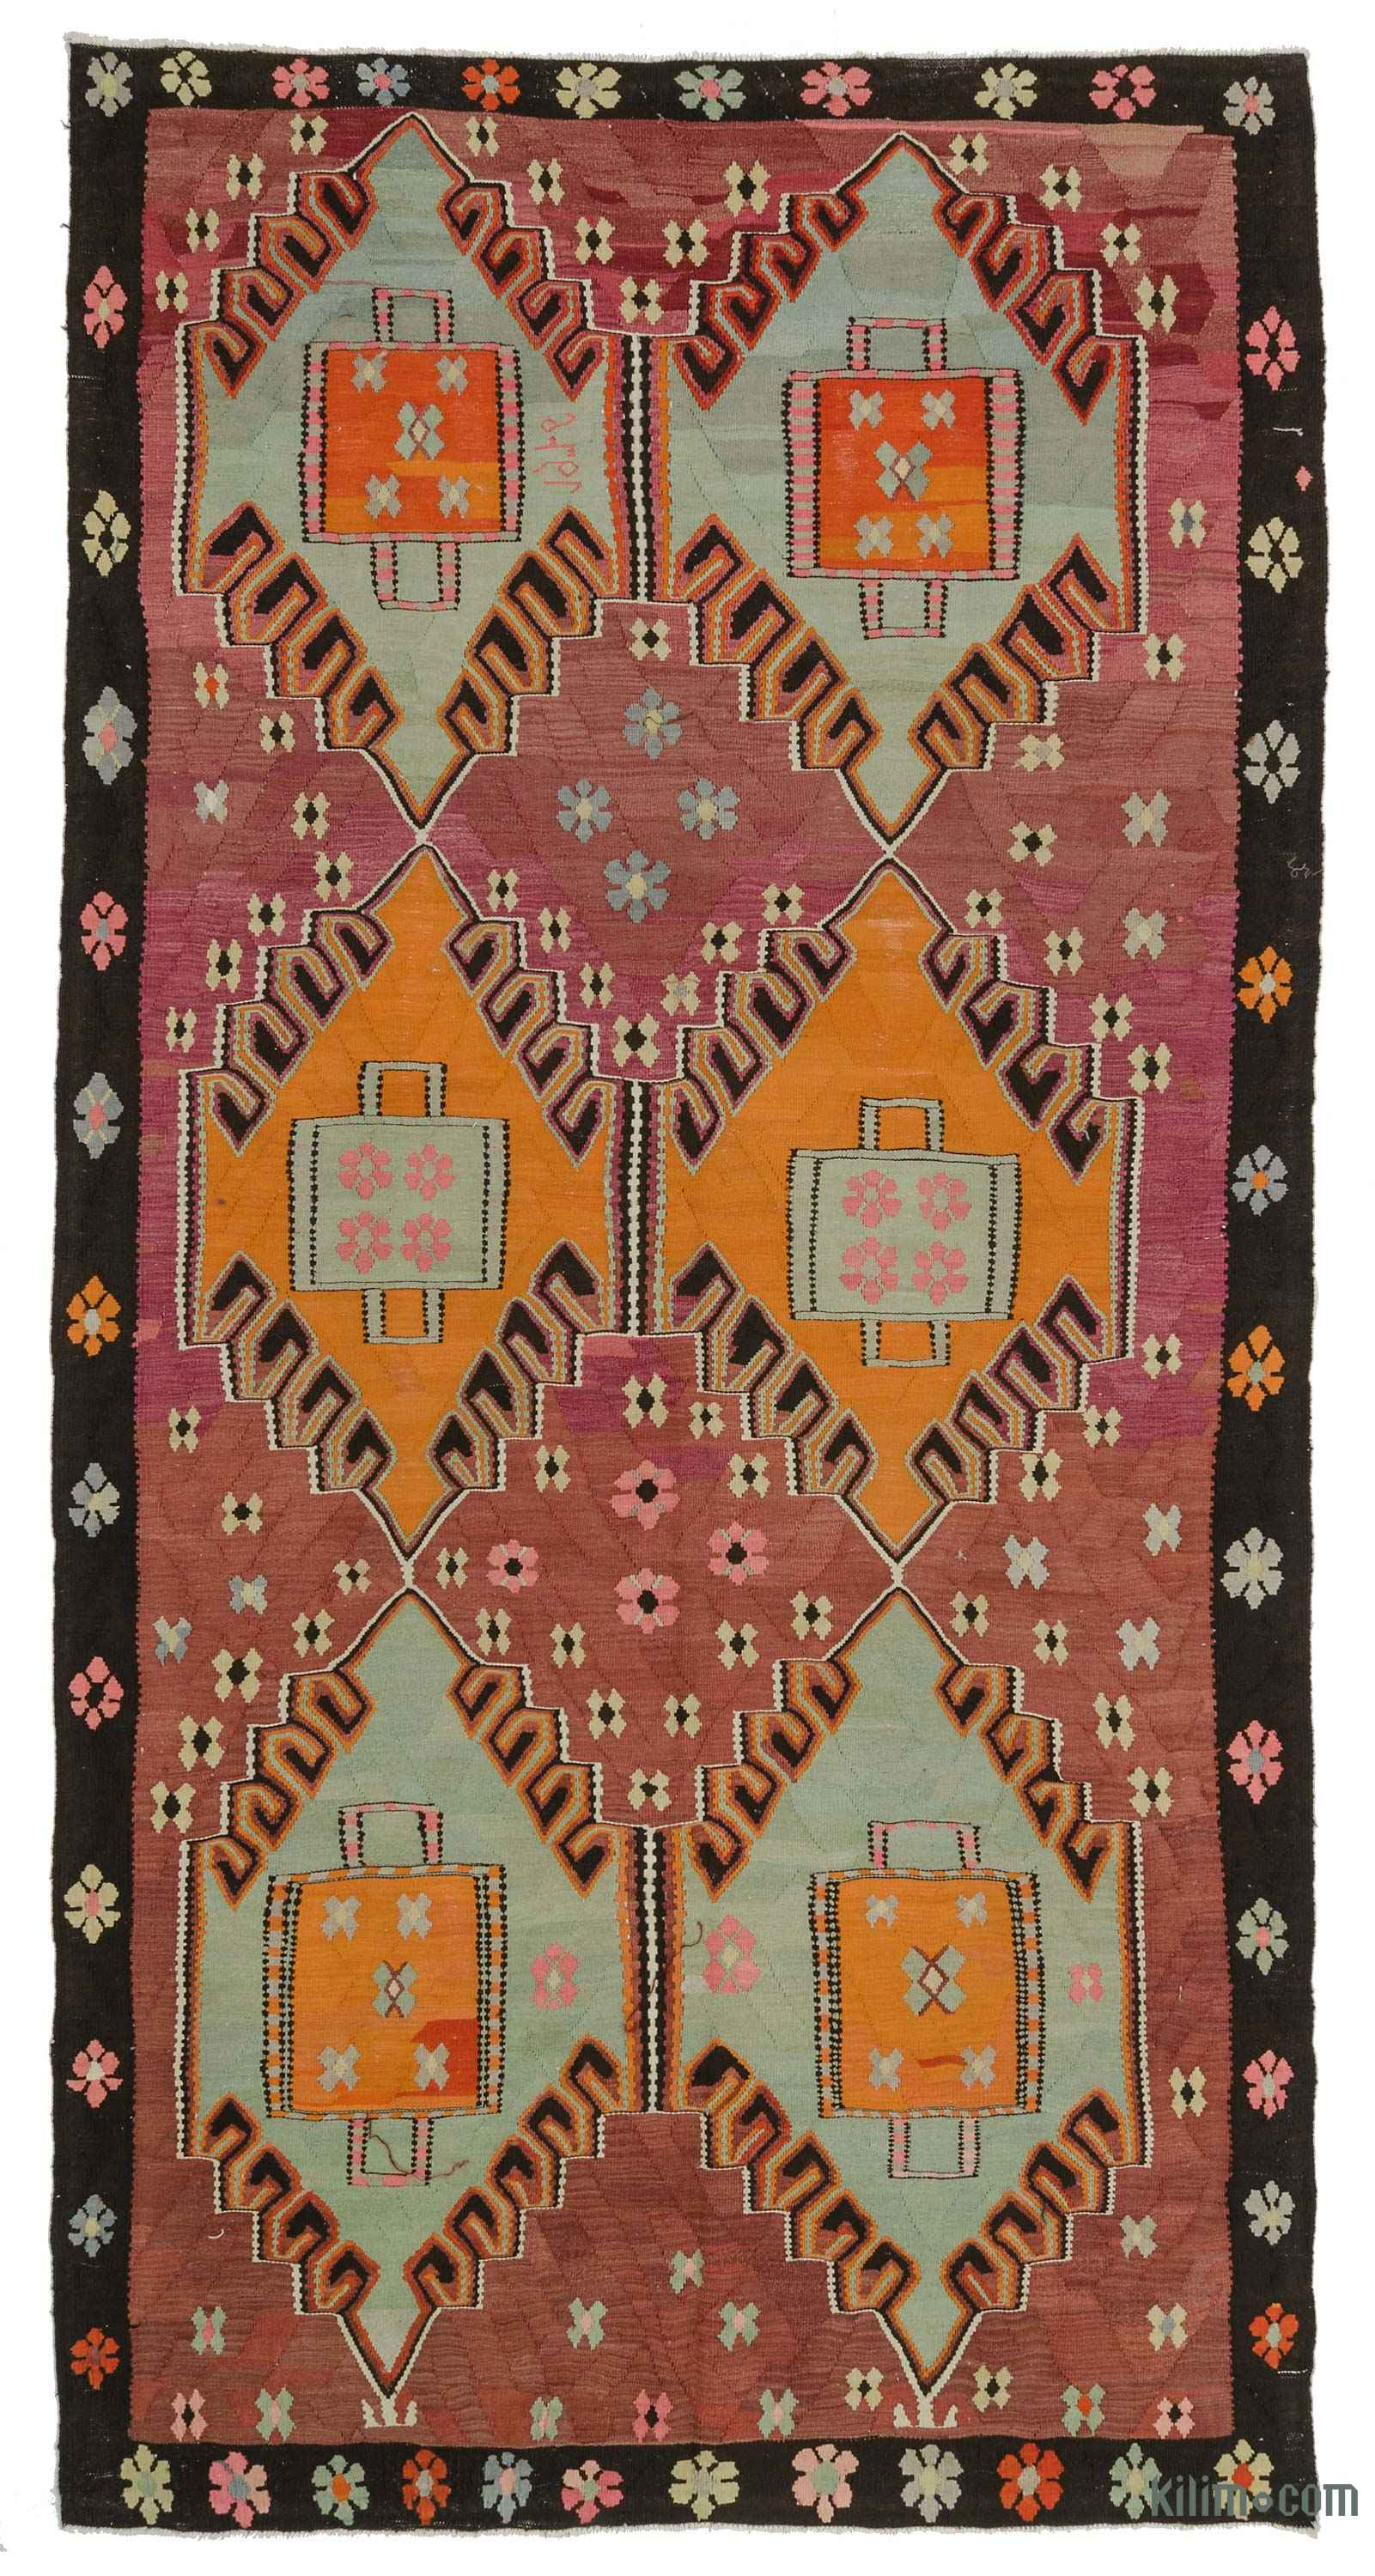 Tribal Rugs Kilim Rugs Overdyed Vintage Rugs Handmade Turkish